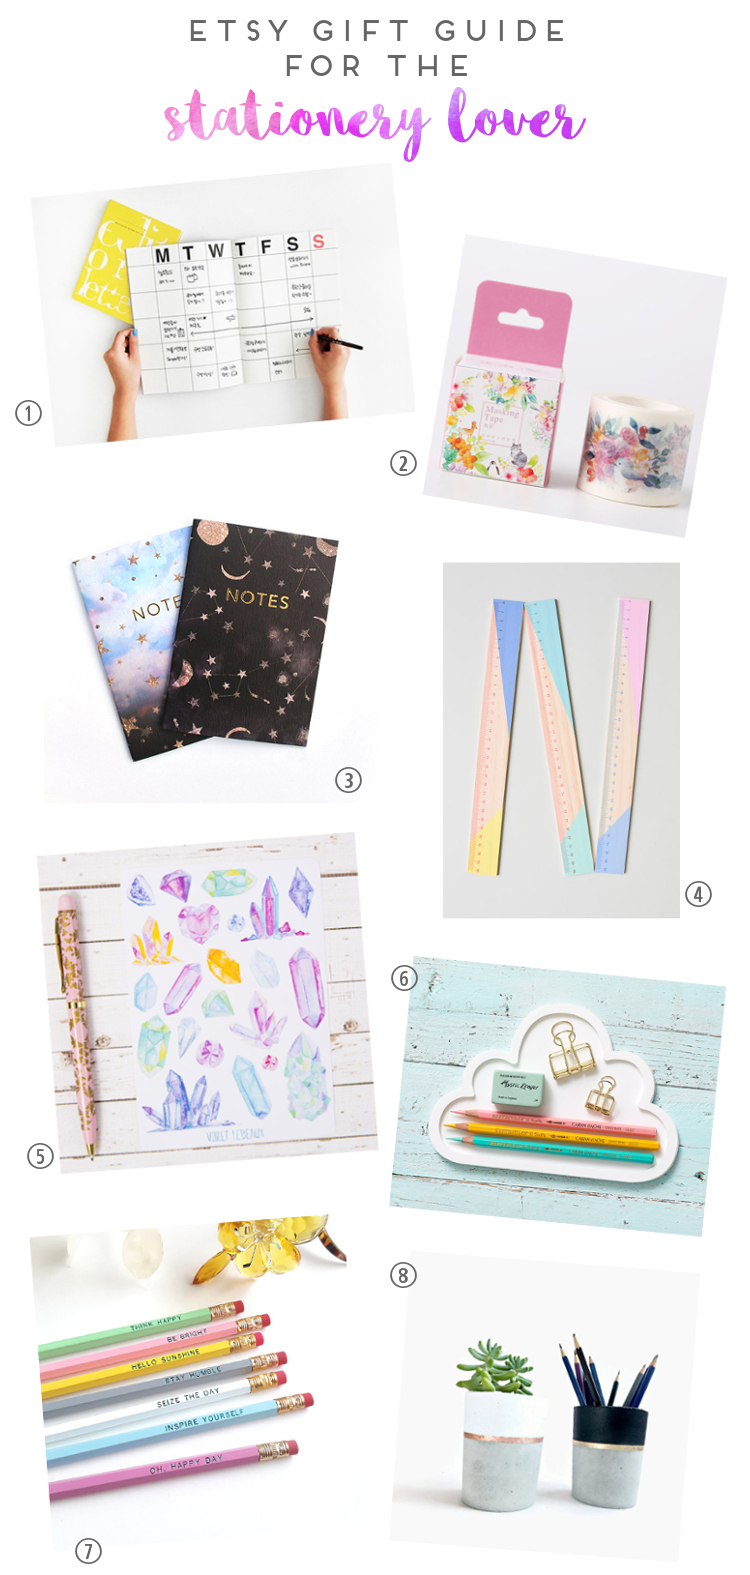 ETSY GIFT GUIDE FOR THE STATIONERY LOVER.